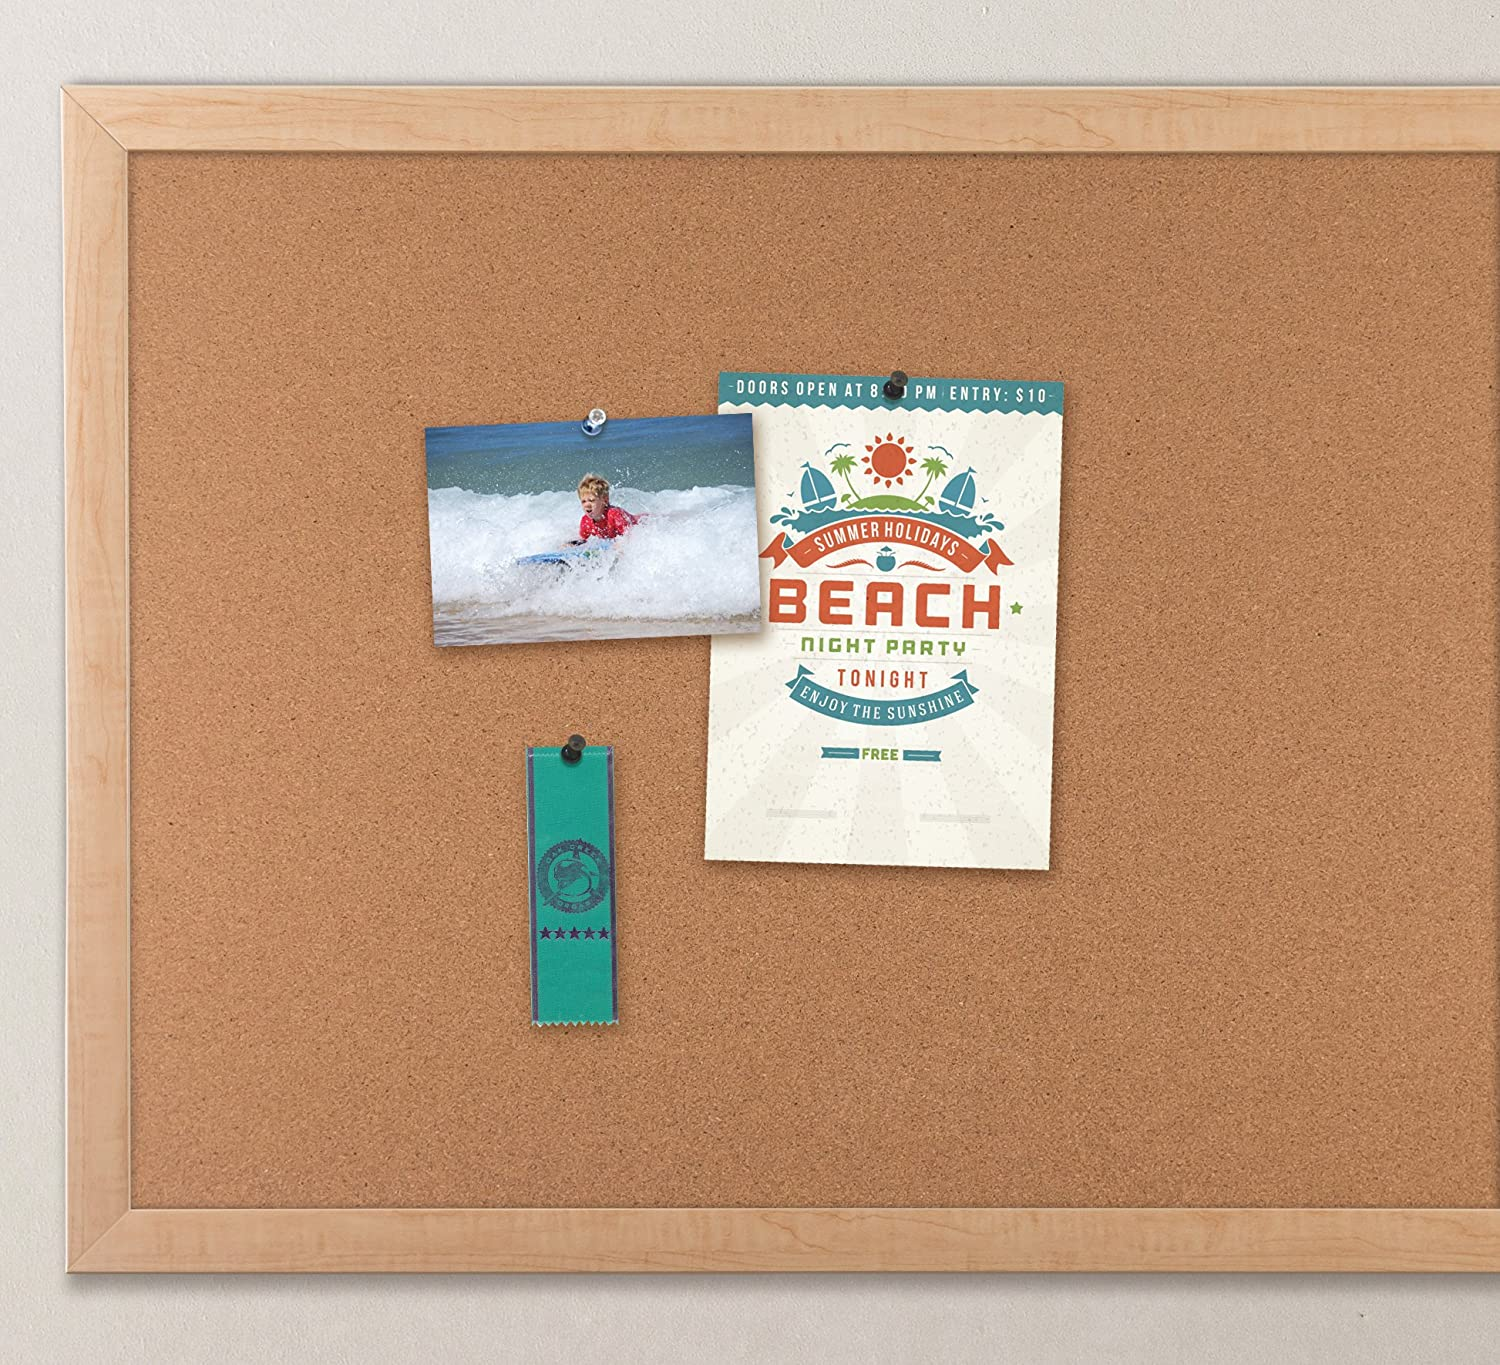 Uncategorized Cork Board No Frame amazon com u brands cork bulletin board 35 x 23 inches light birch wood frame office products